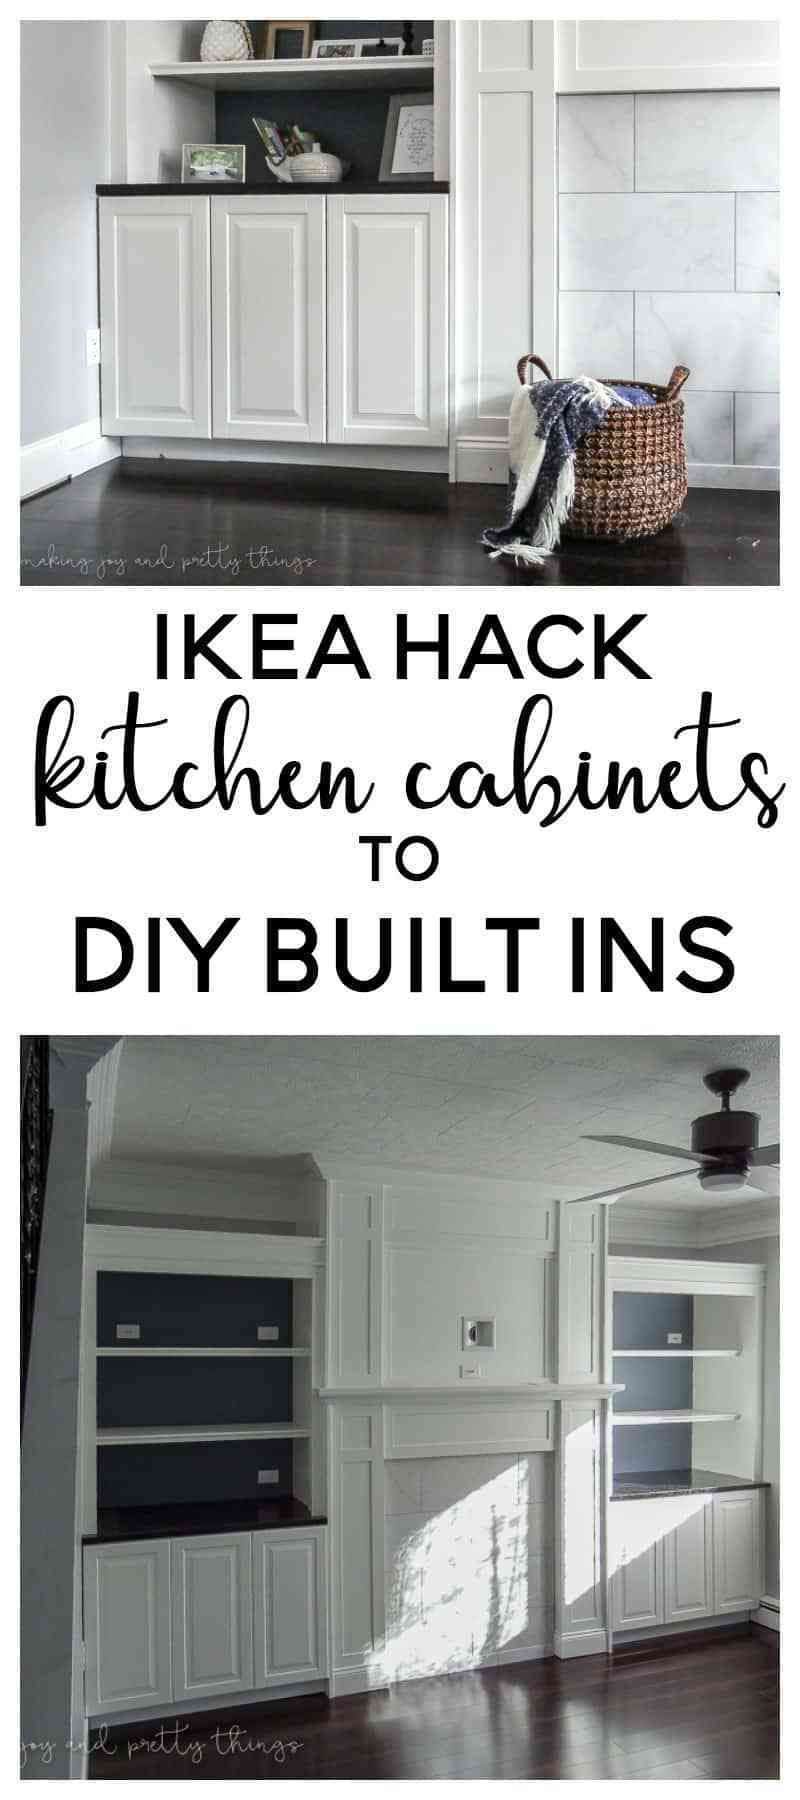 IKEA Hack: Kitchen Cabinets Turned Built Ins - Making Joy and Pretty Things -   18 room decor Ikea kitchens ideas